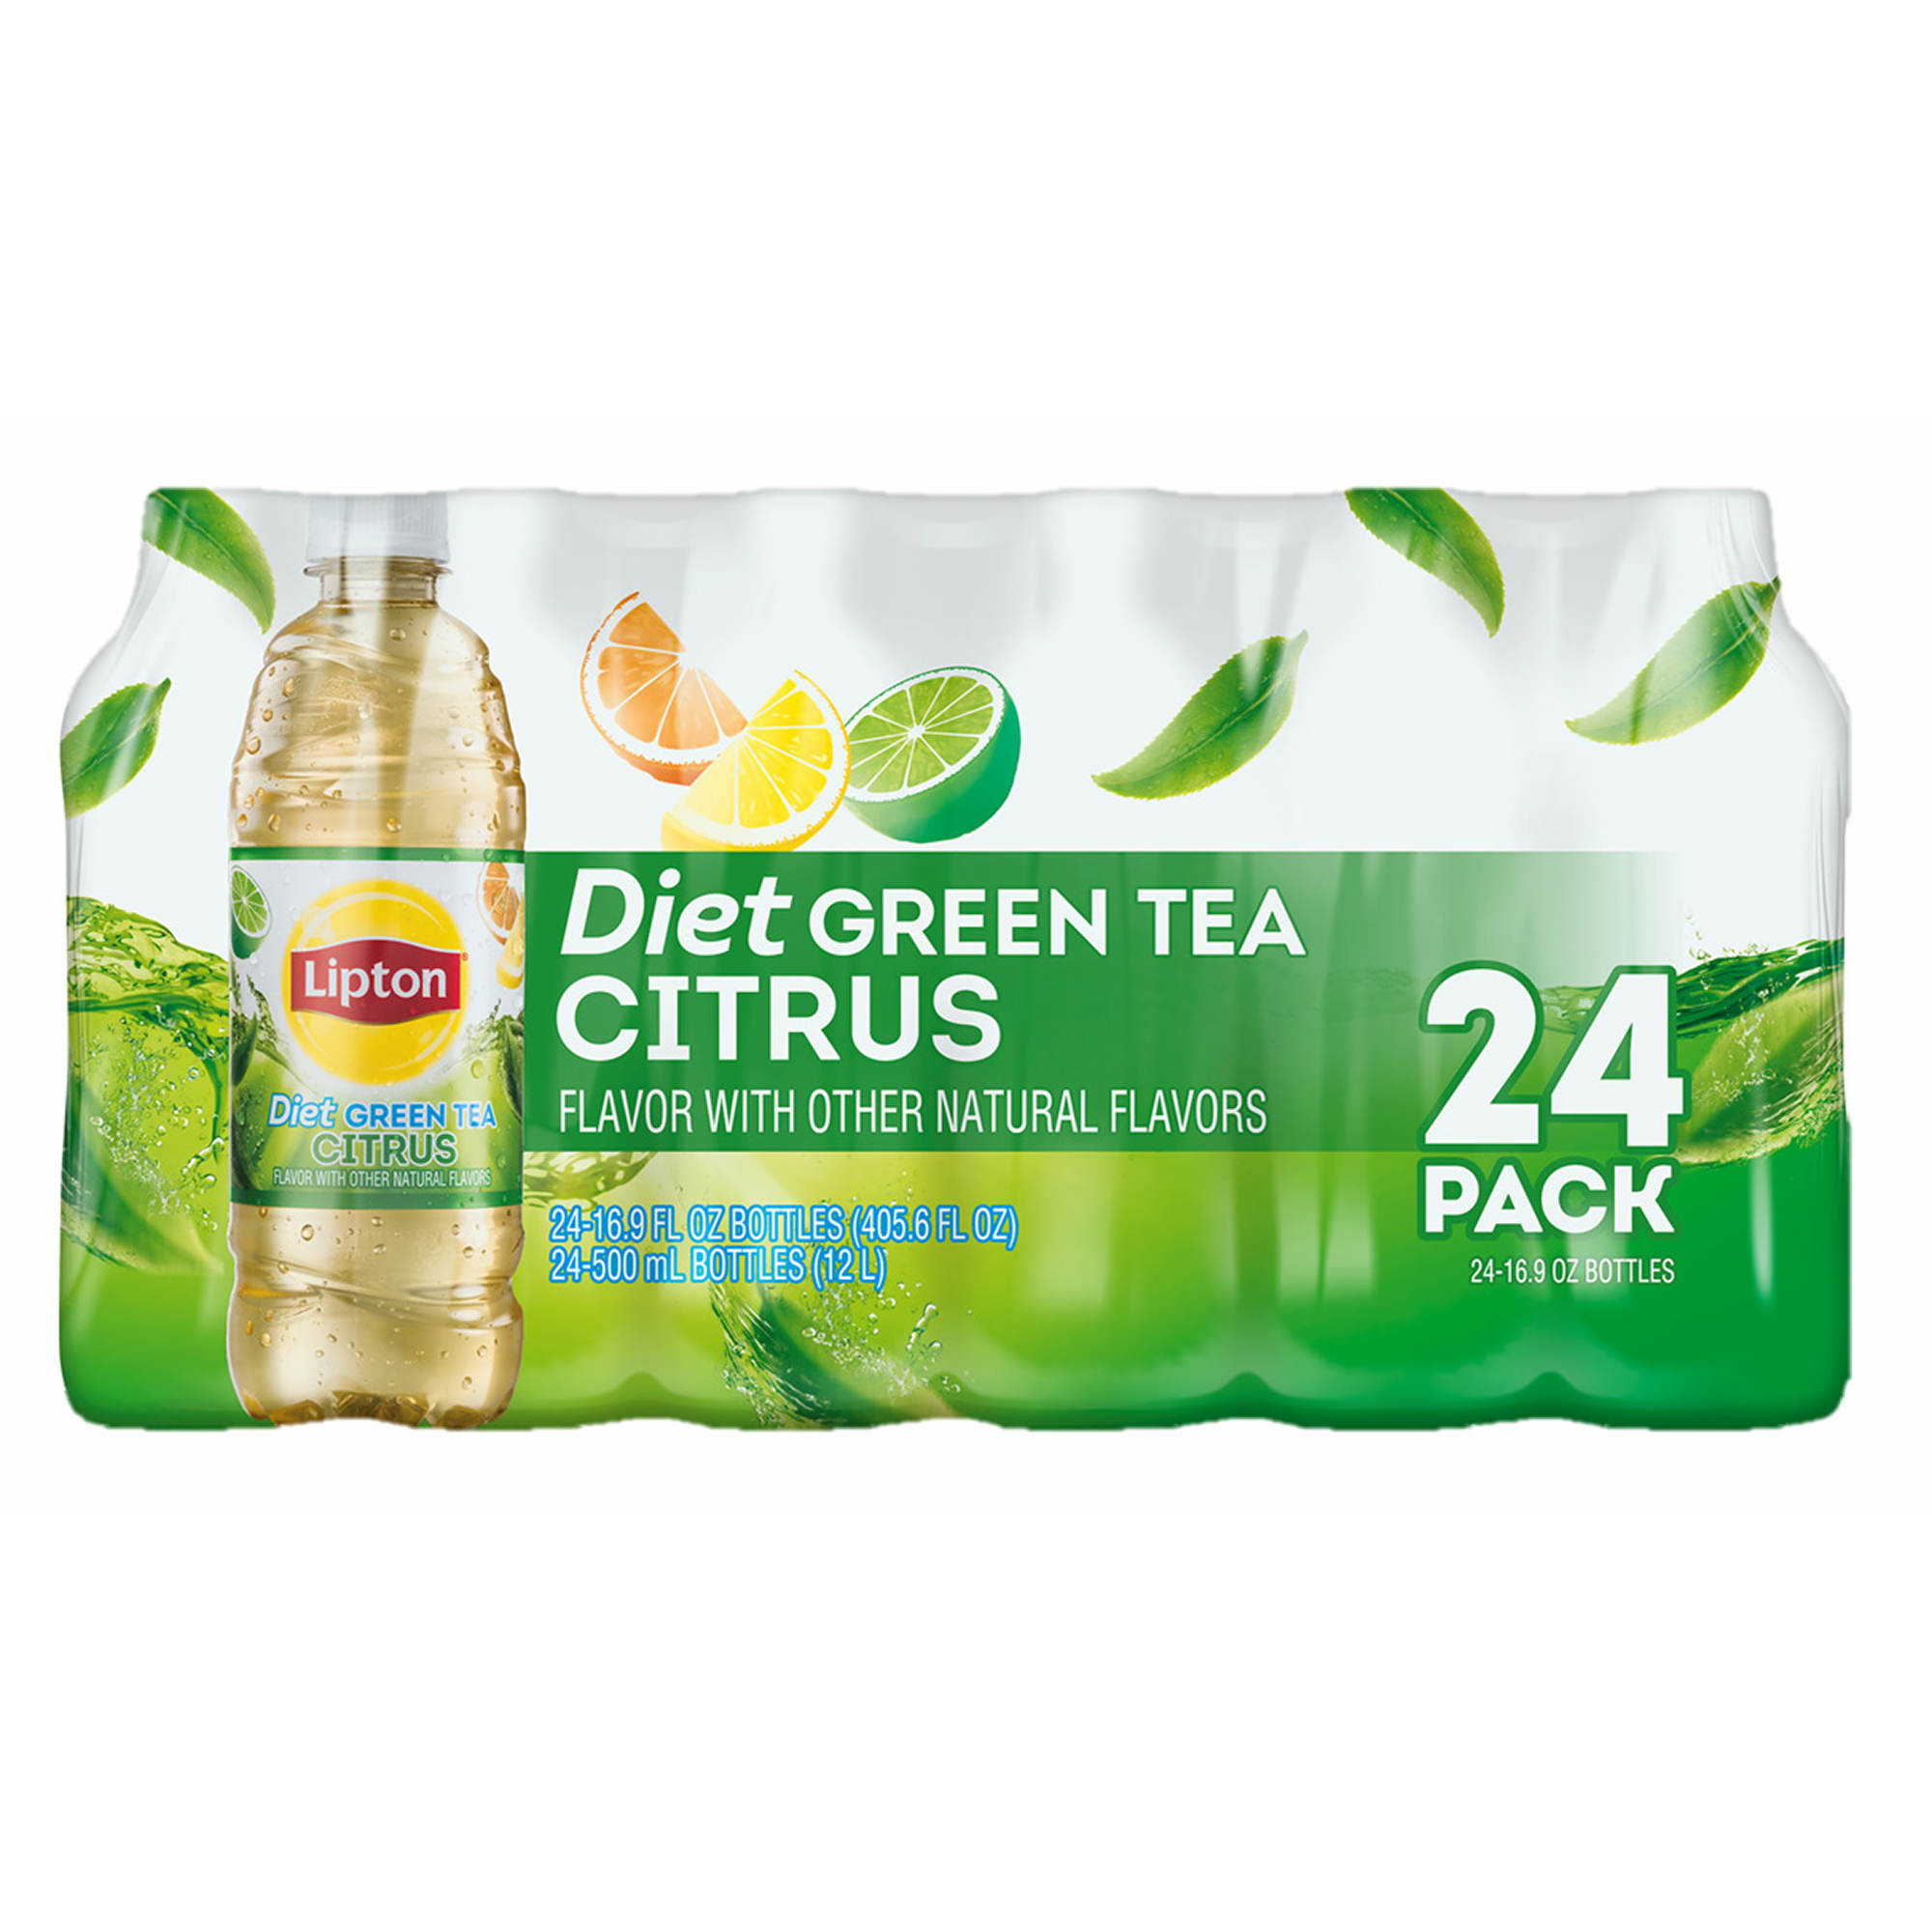 Product - (4 Boxes) Lipton Green Tea Bags Decaffeinated Blackberry Pomegranate 20 ct. Product Image. Price $ 8. Product Title Lipton Drink Mix, Iced Tea Green Citrus, Oz, 1 Count. Add To Cart. There is a problem adding to cart. Please try again.